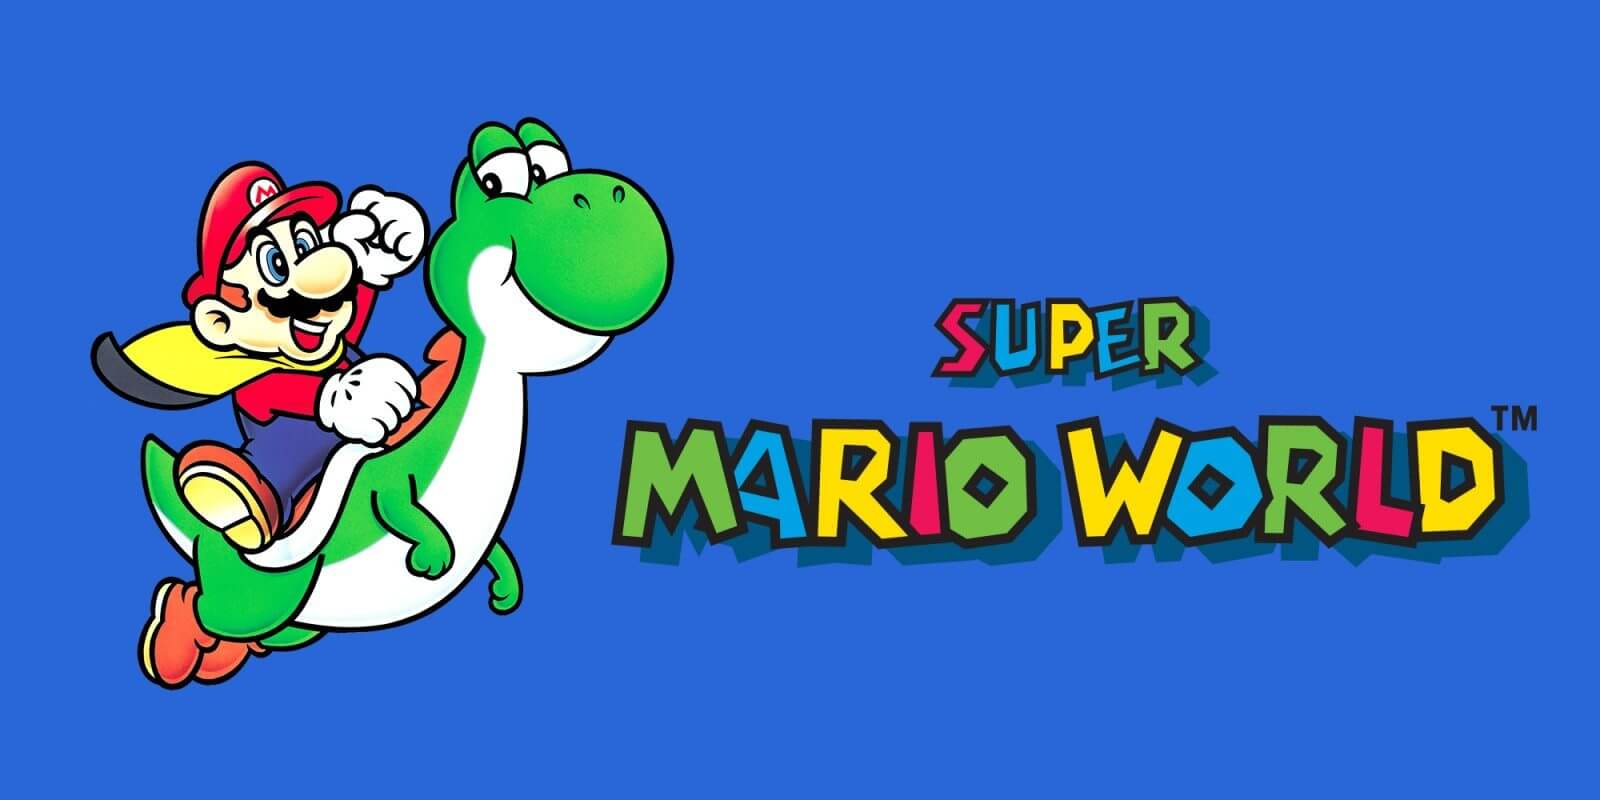 H2x1 SNES SuperMarioWorld image1600w